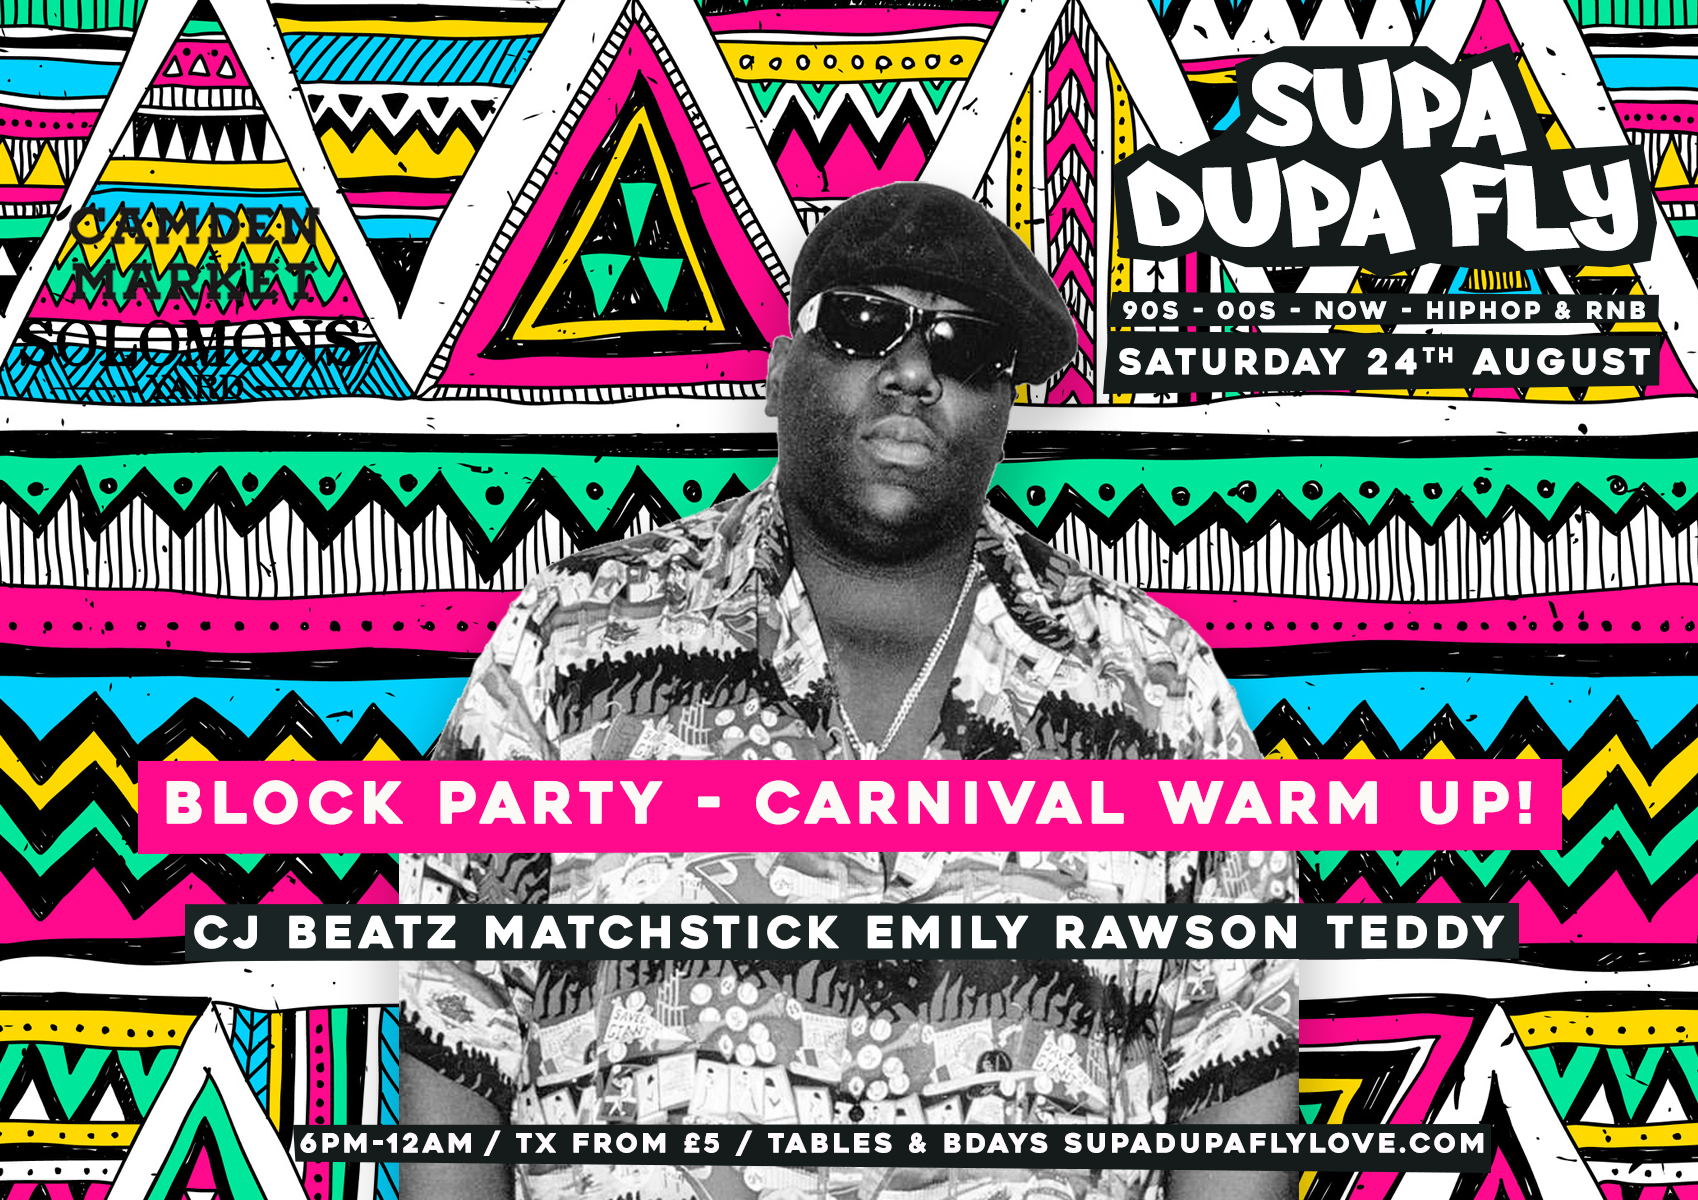 Supa Dupa Fly x Summer Block Party - Carnival Warm Up